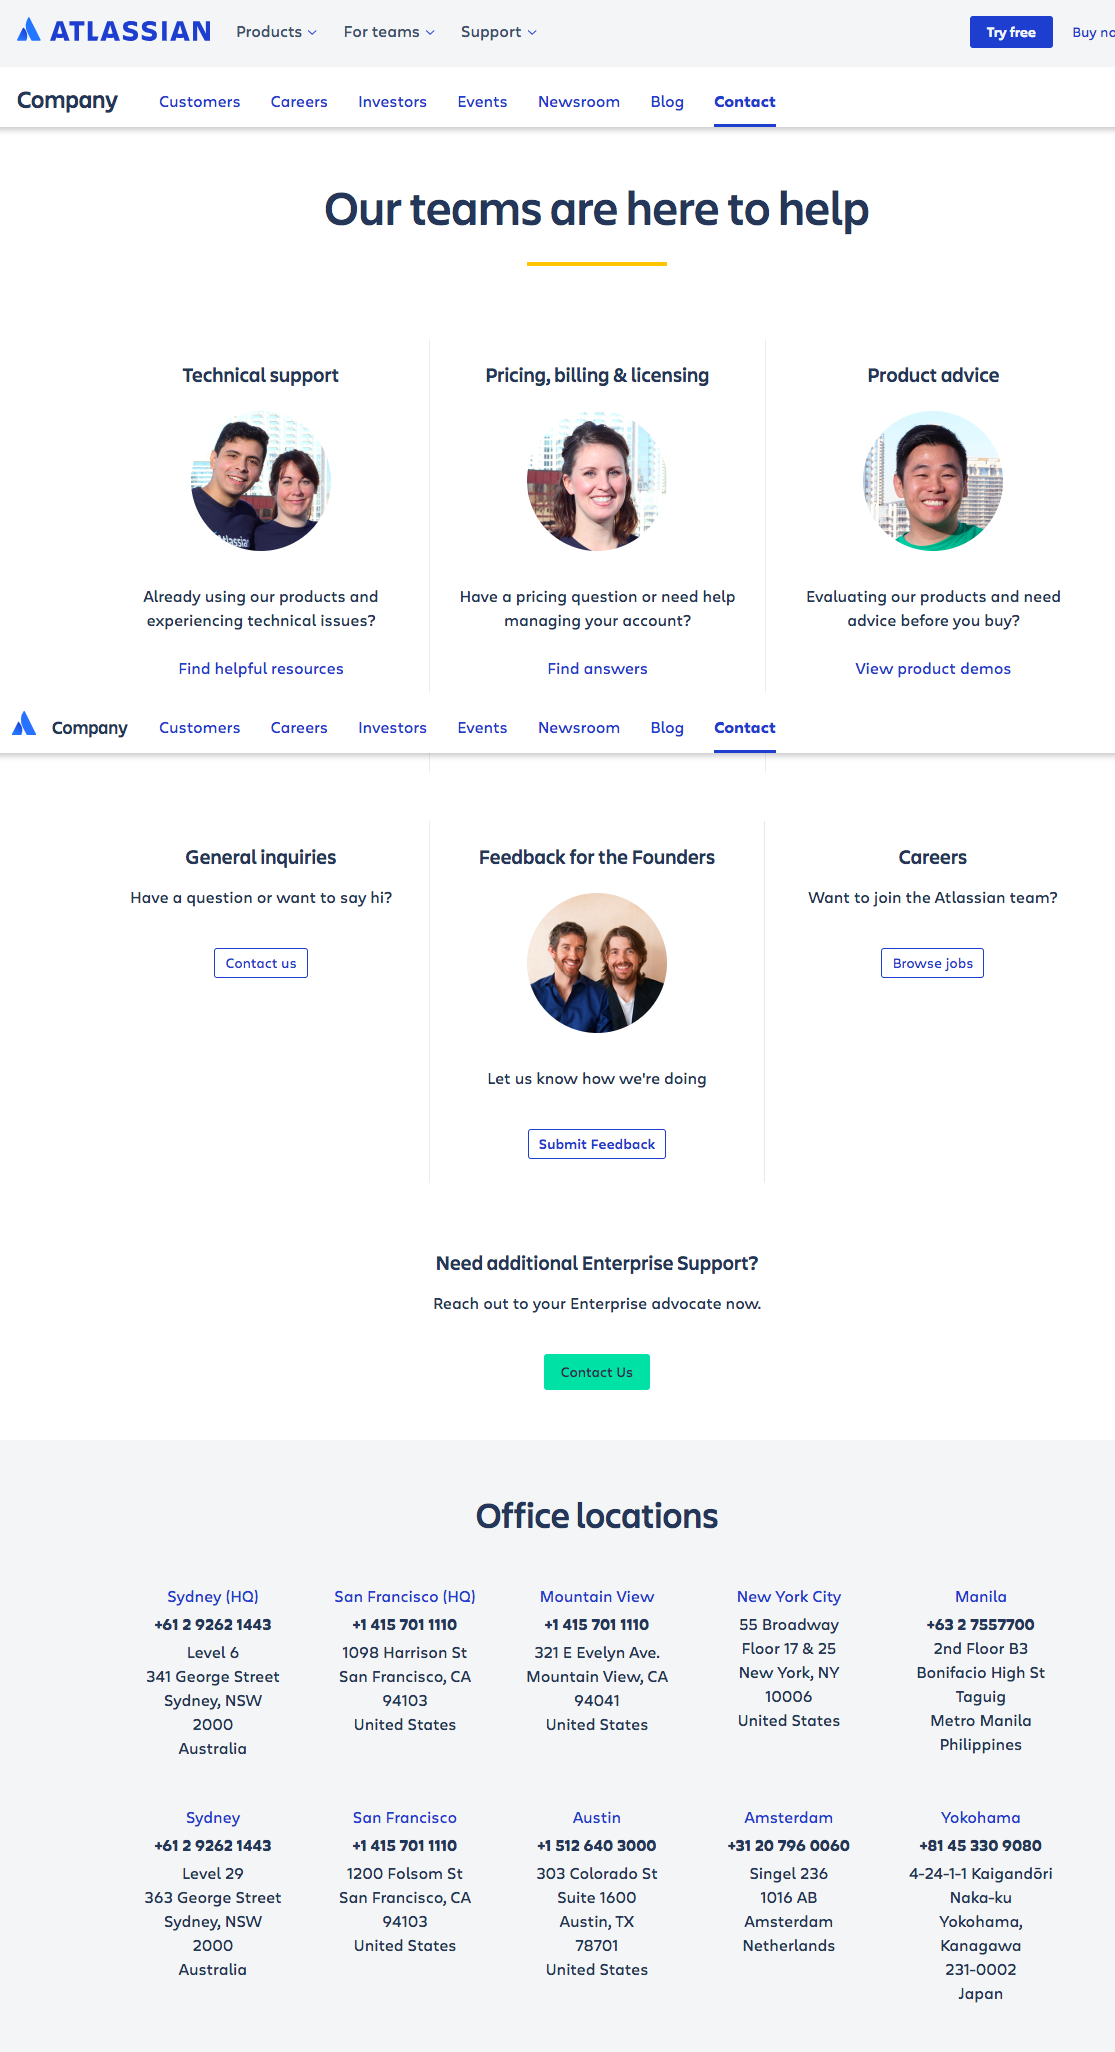 atlassian contact us